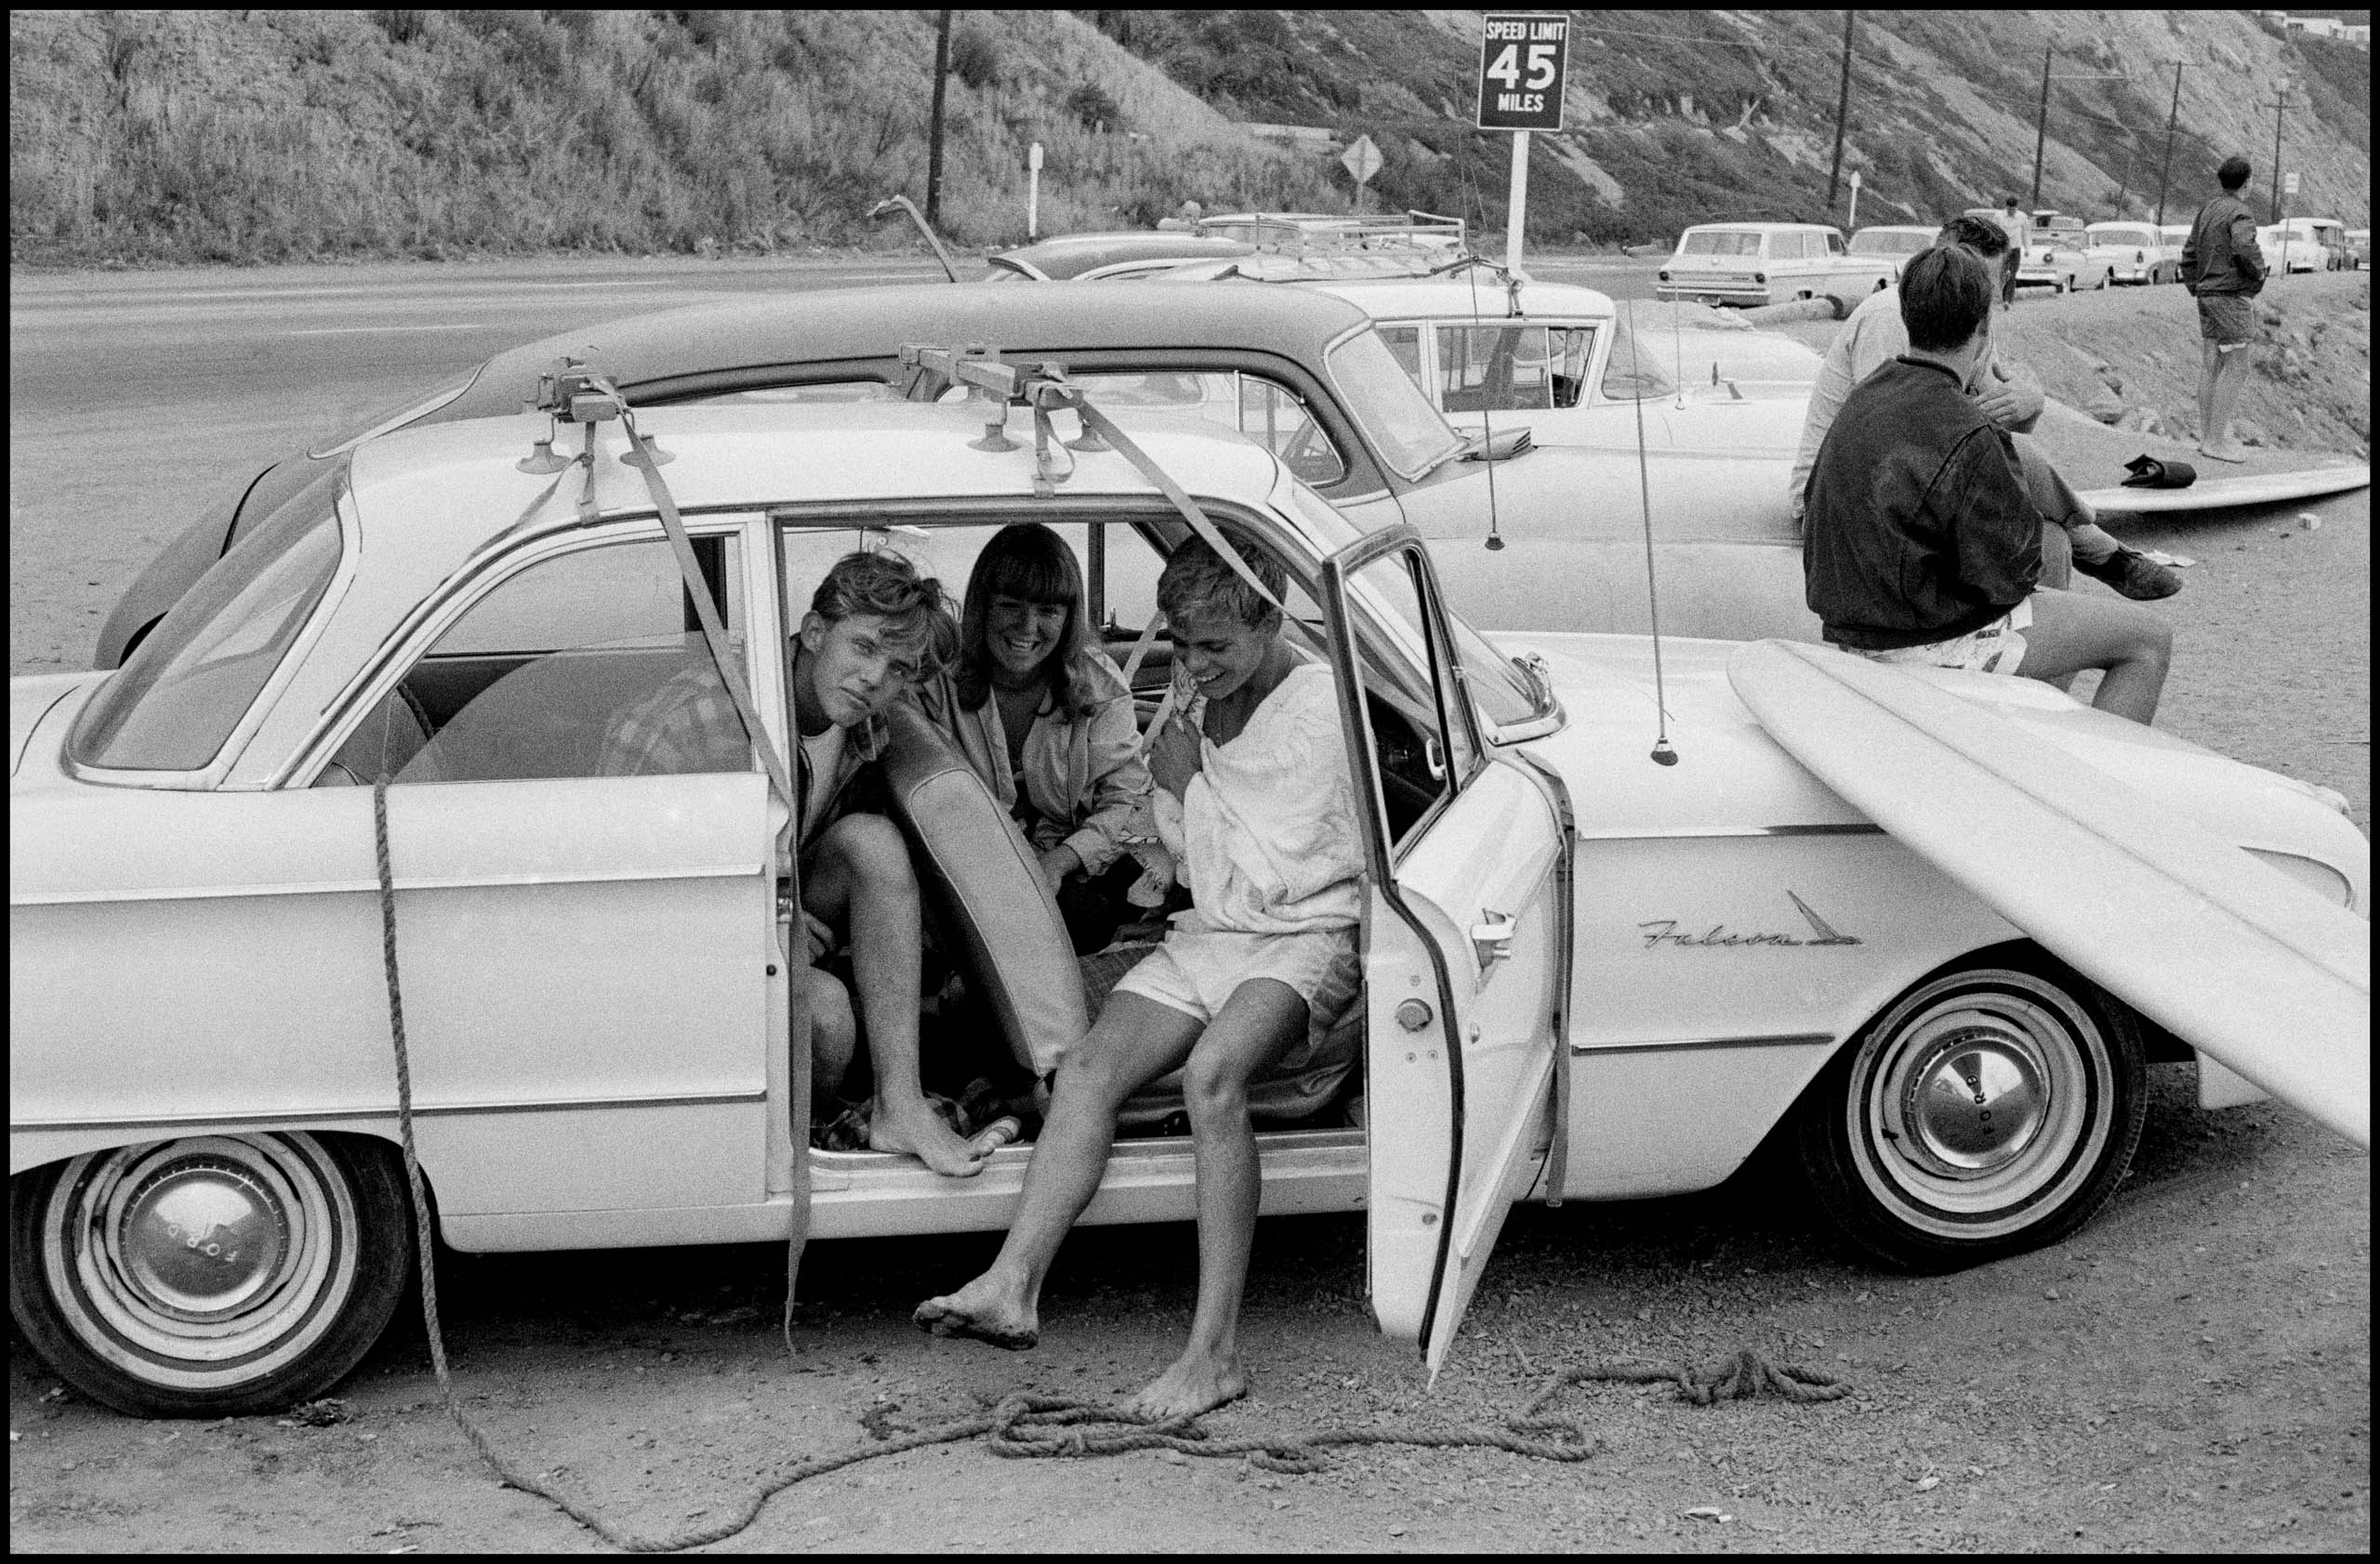 USA. Los Angeles. 1964. Photo by Bruce Davidson/Magnum Photos Surfers along Pacific Coast Highway.